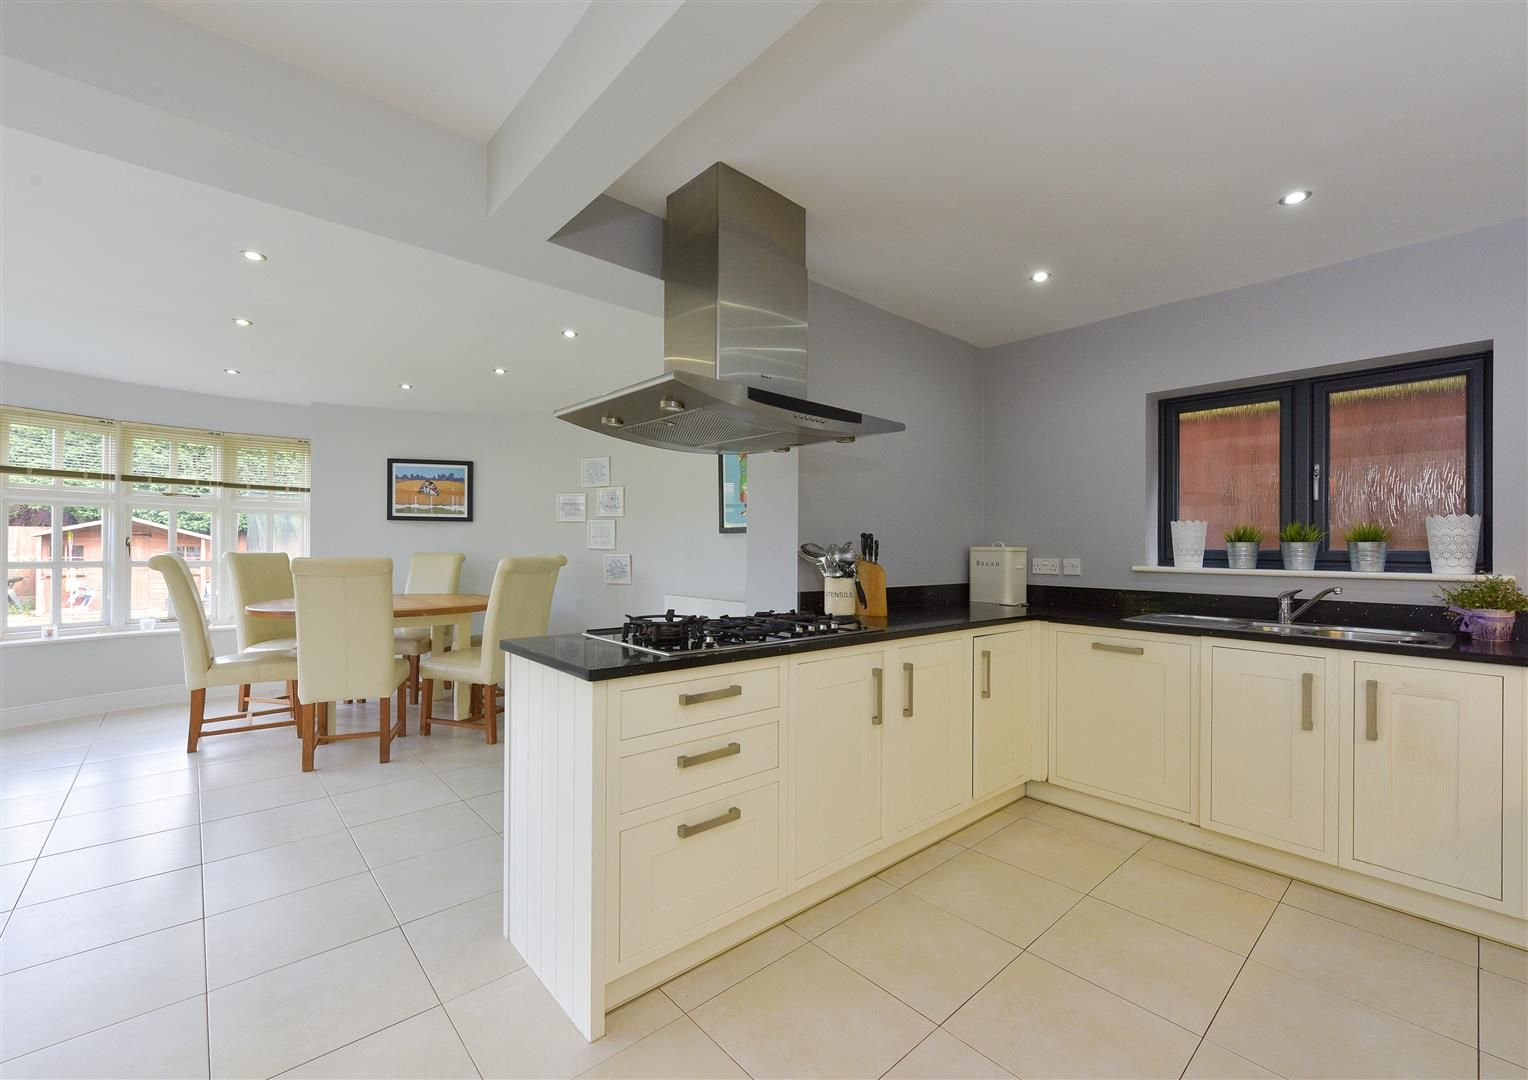 5 bed house for sale in Hagley 3